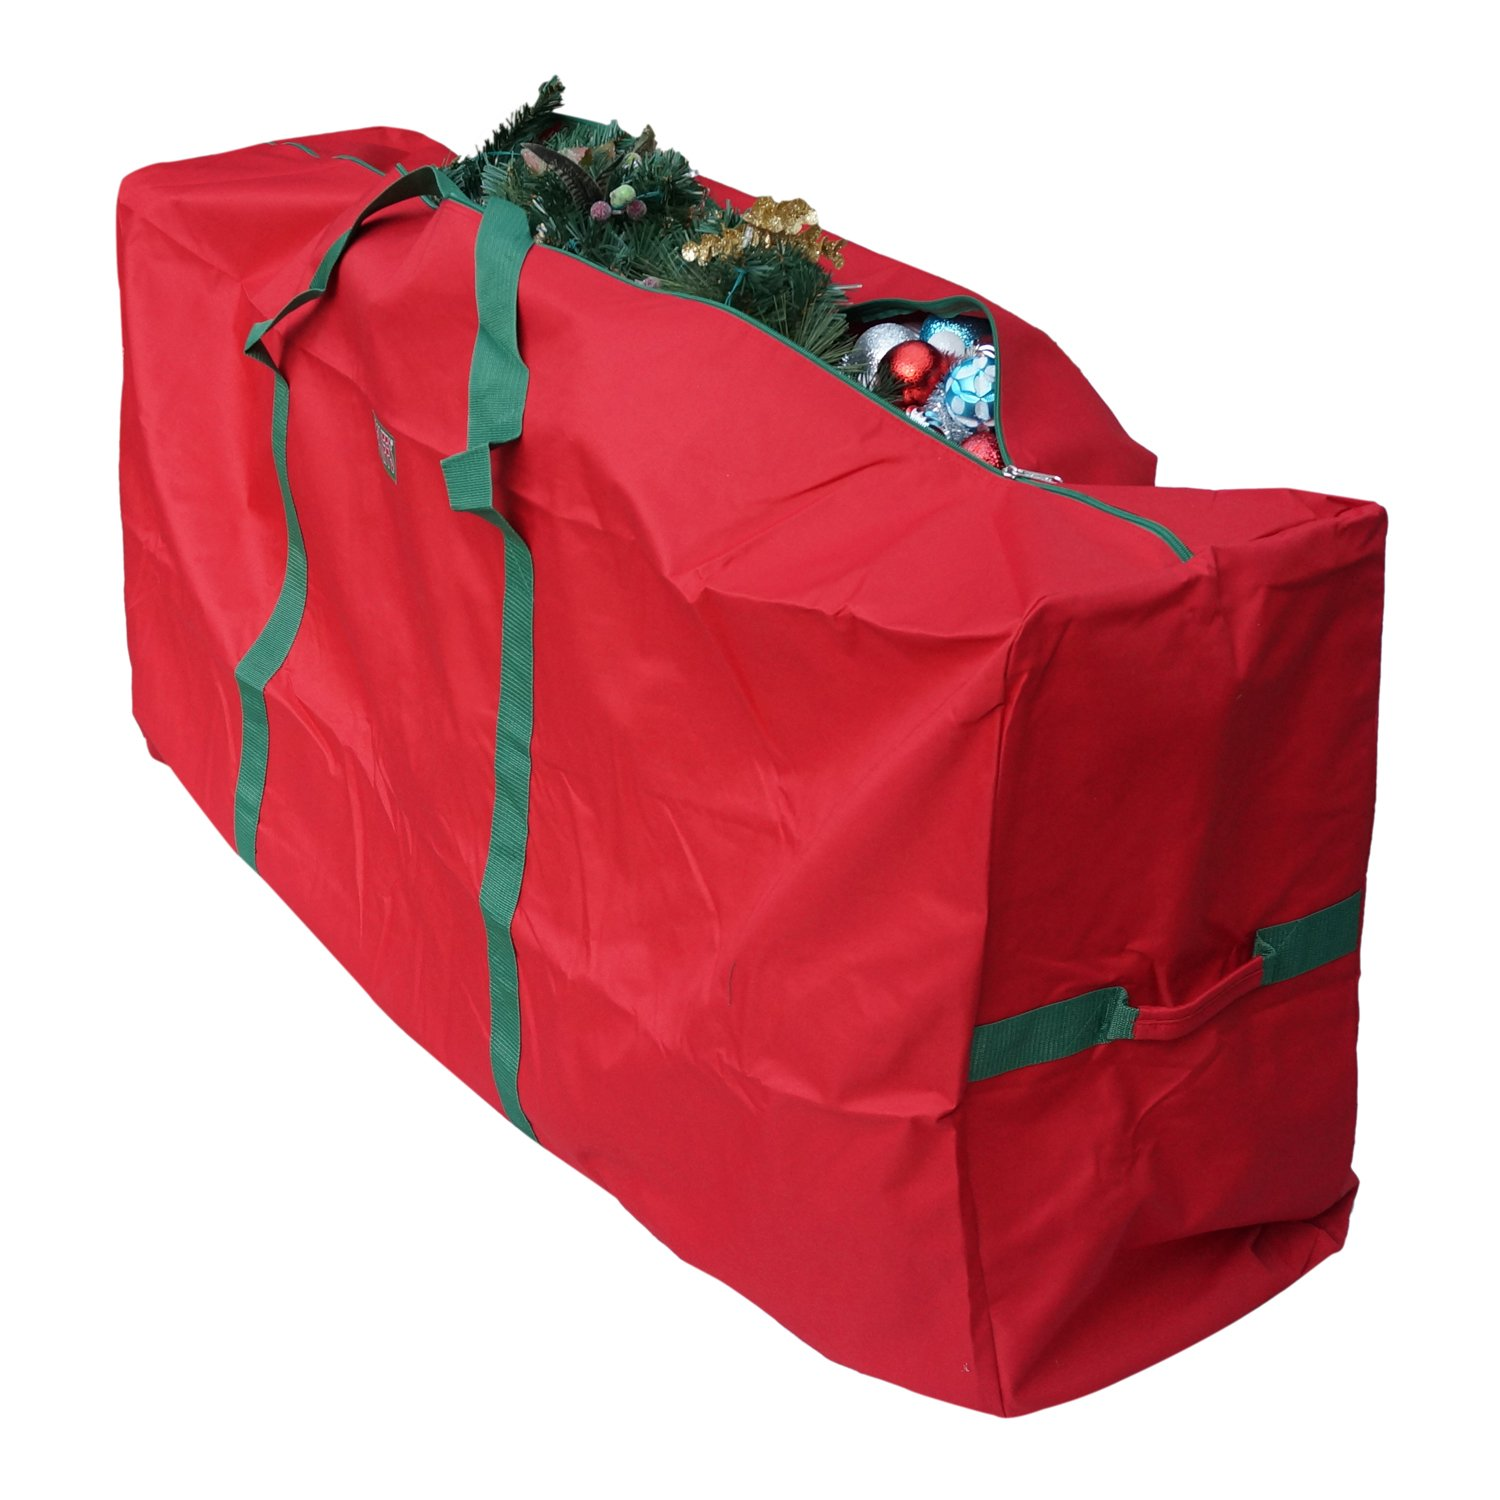 """K-Cliffs Christmas Tree Storage Bag Extra Large Duffel for Up to 9 Foot Tree Holiday Red, Dimensions 65'' x 30"""" x 15'', Red by All Fine"""